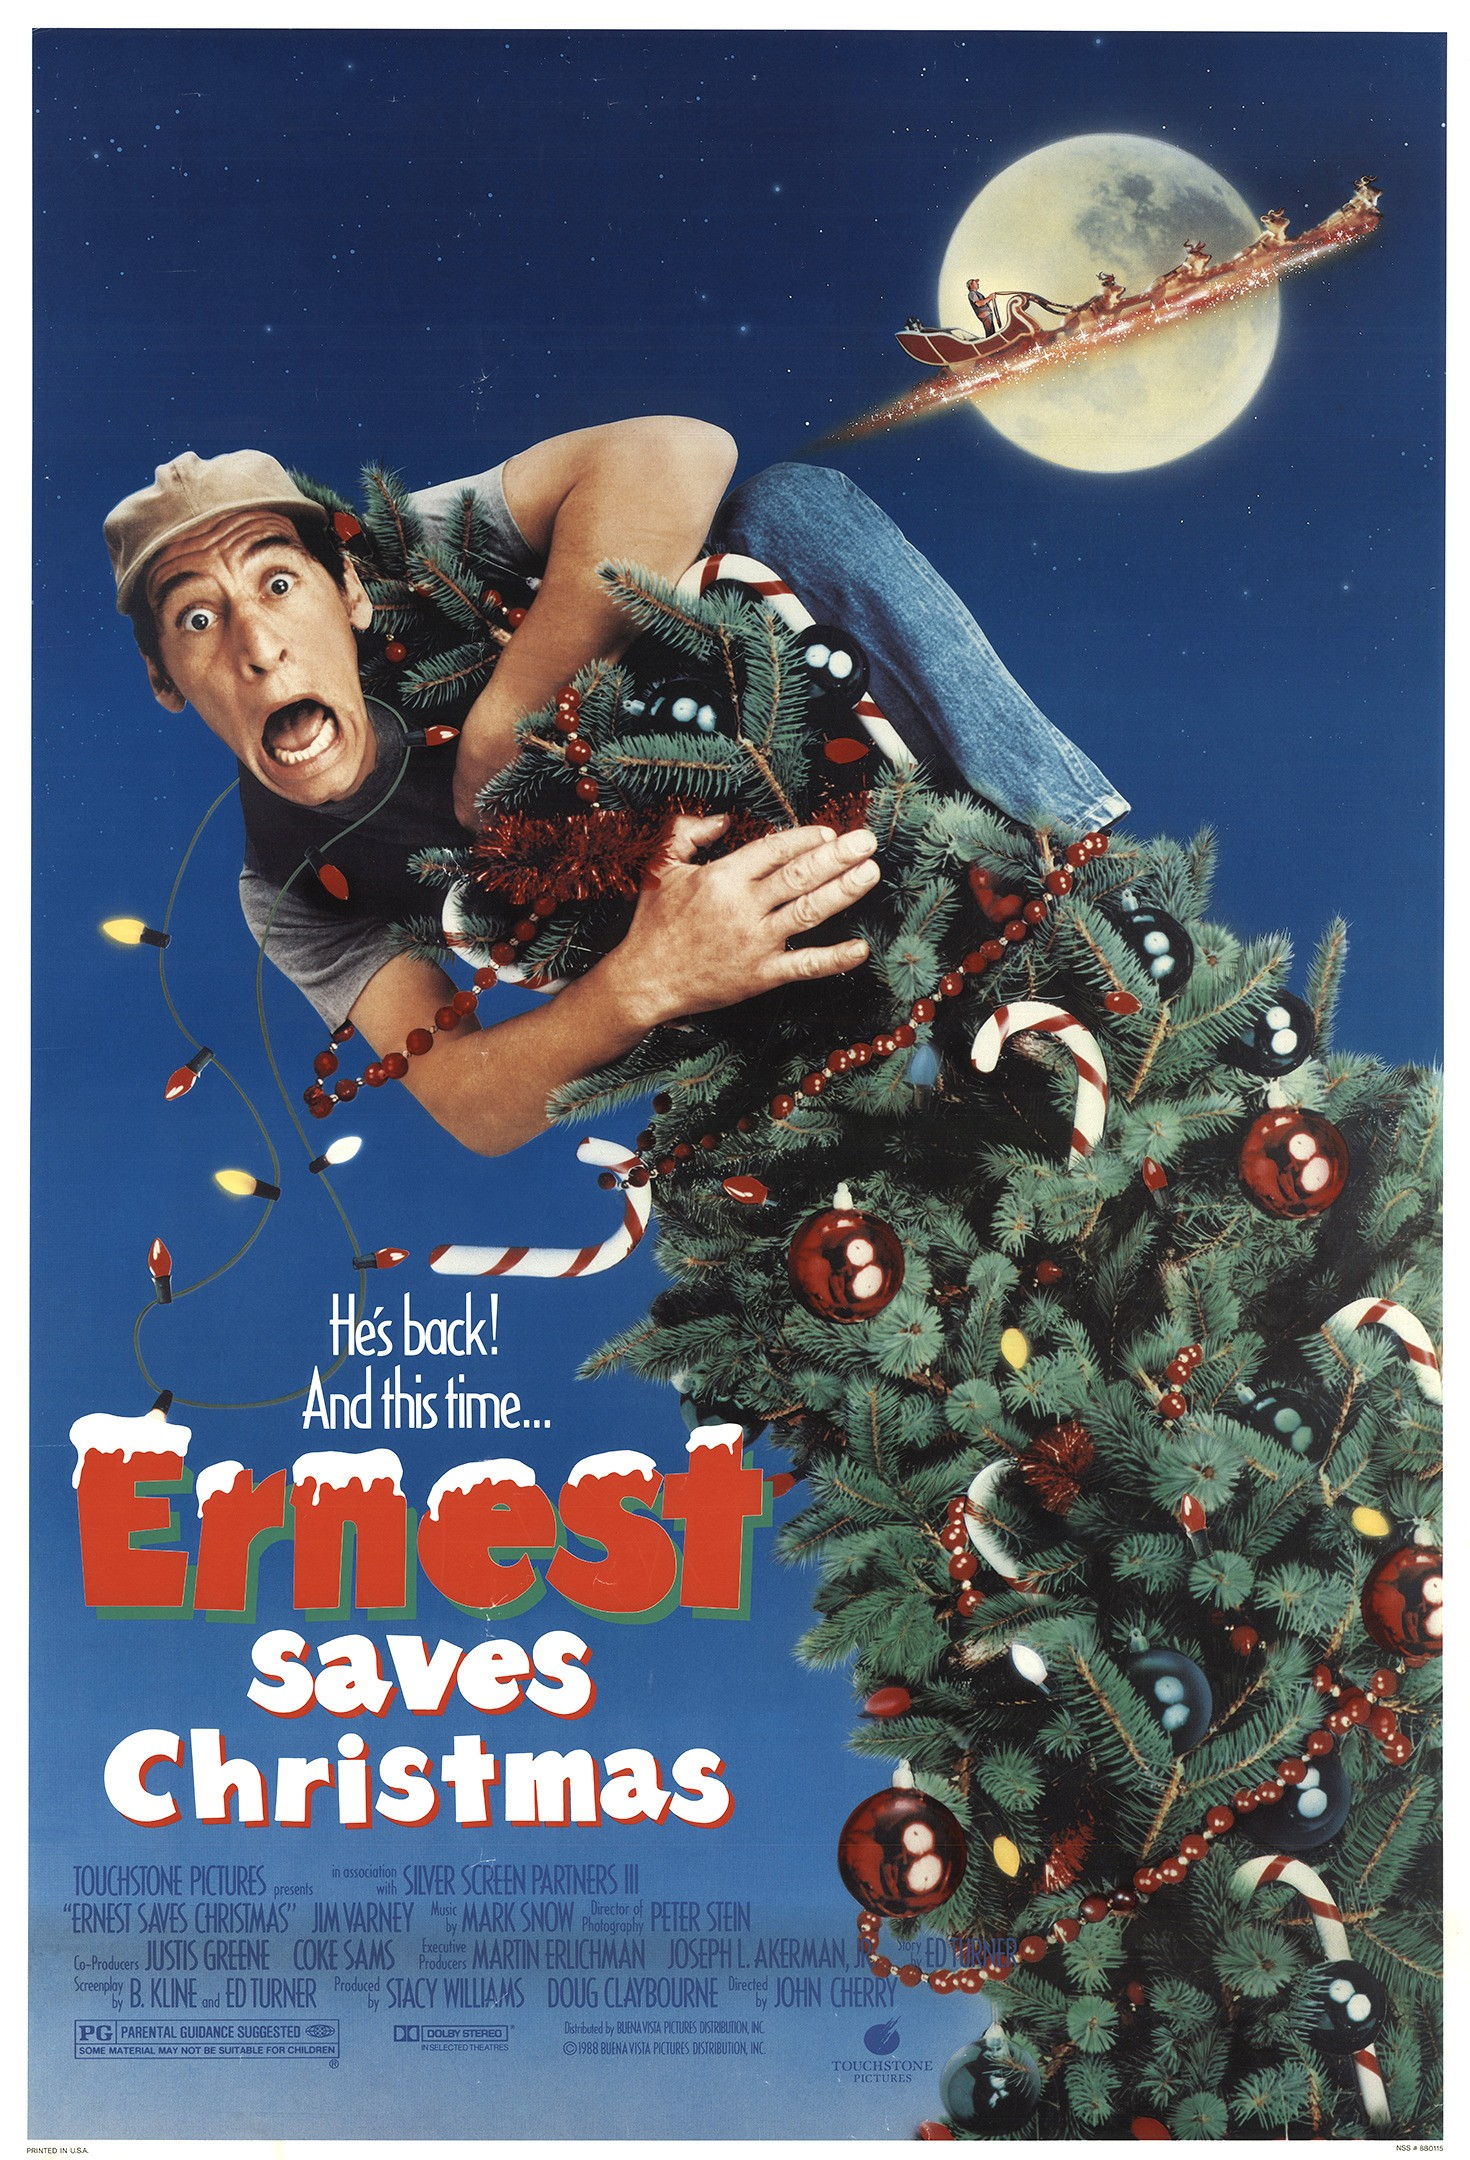 Affiche Poster ernest save christmas pere noel prison disney touchstone